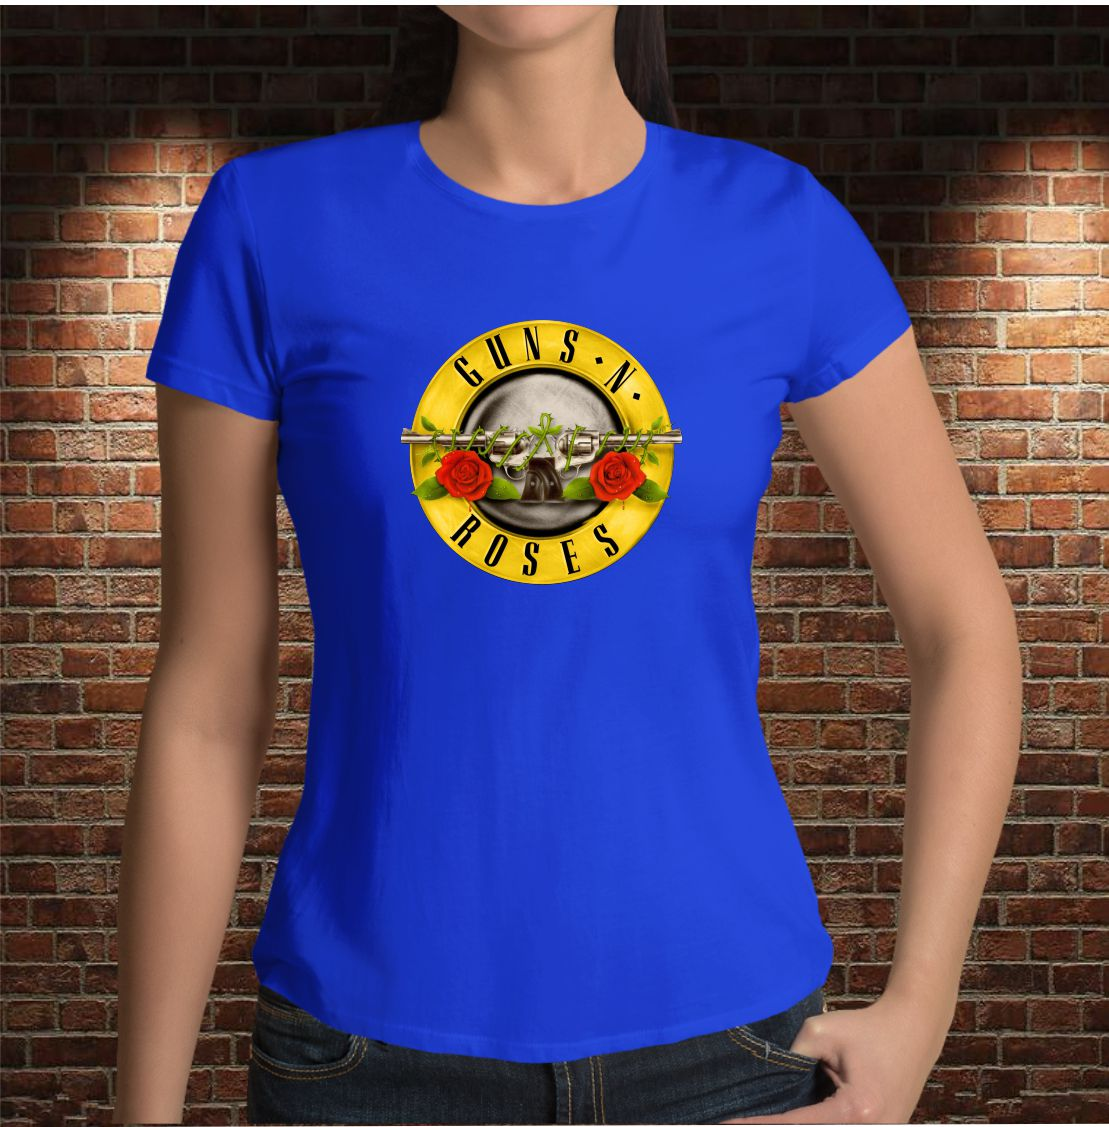 CAMISETA GUNS AND ROSES 3.0